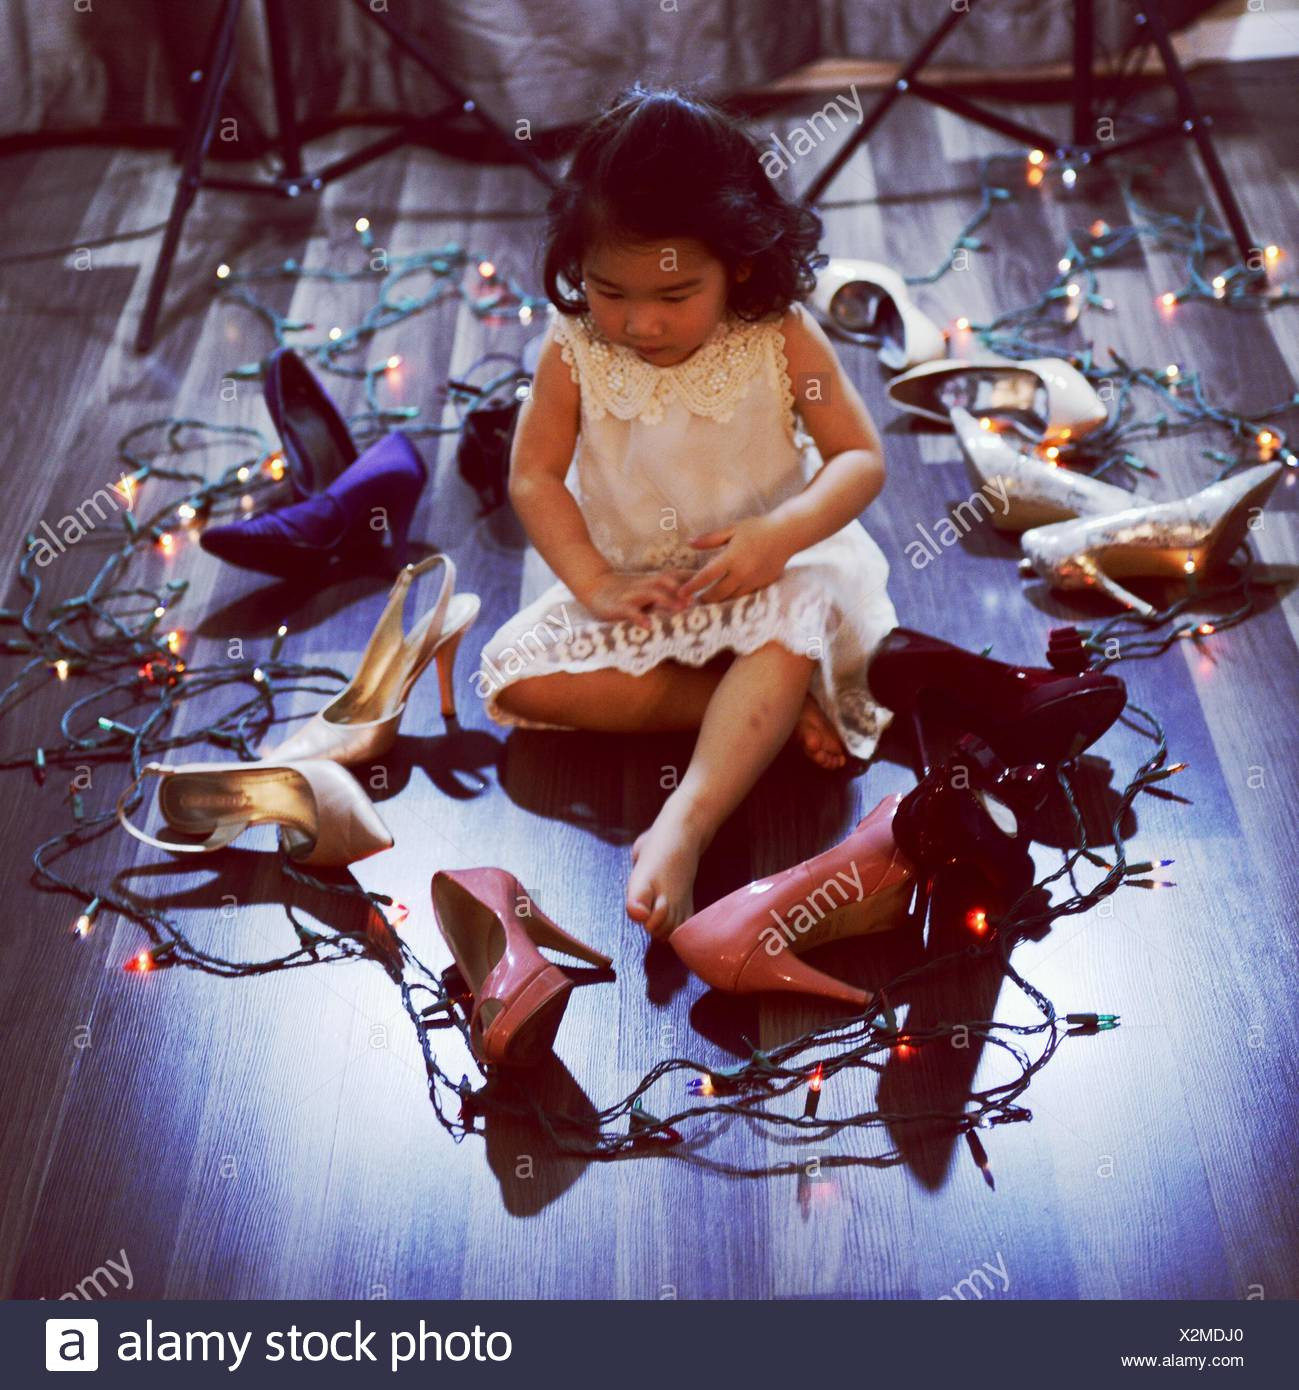 Girl Sitting Amidst High Heels And Christmas Lights On Hardwood Floor - Stock Image